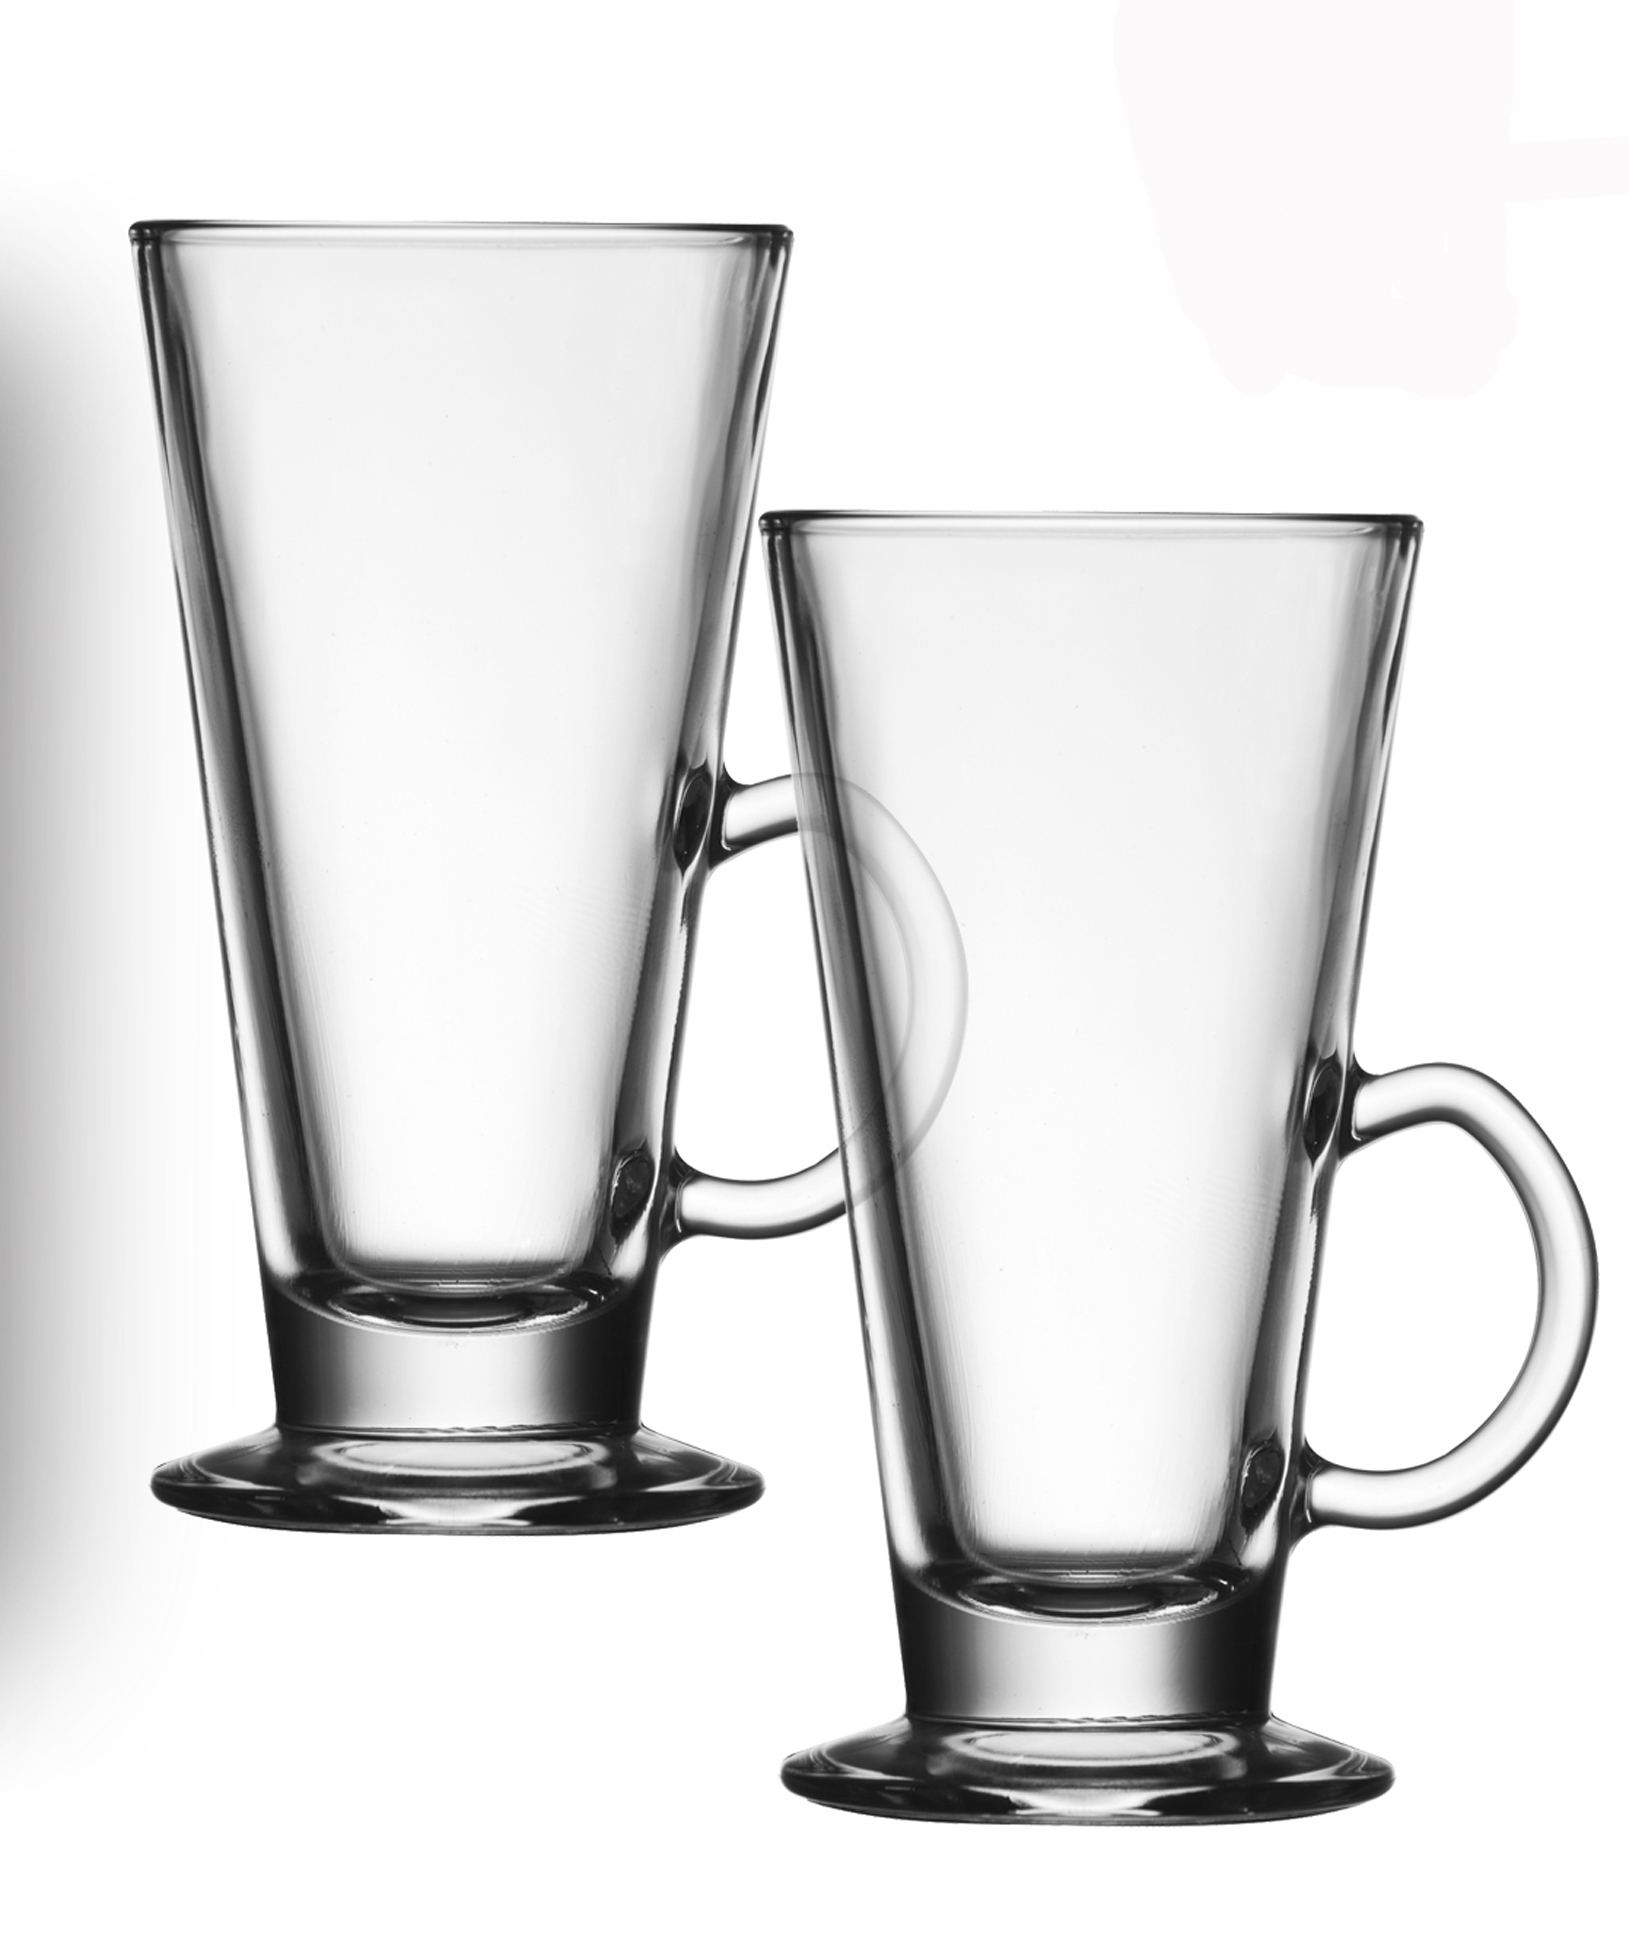 I Style Cafe Latte Coffee Glasses Set Of 2 Glass Mug Hot Drink Beverage T New